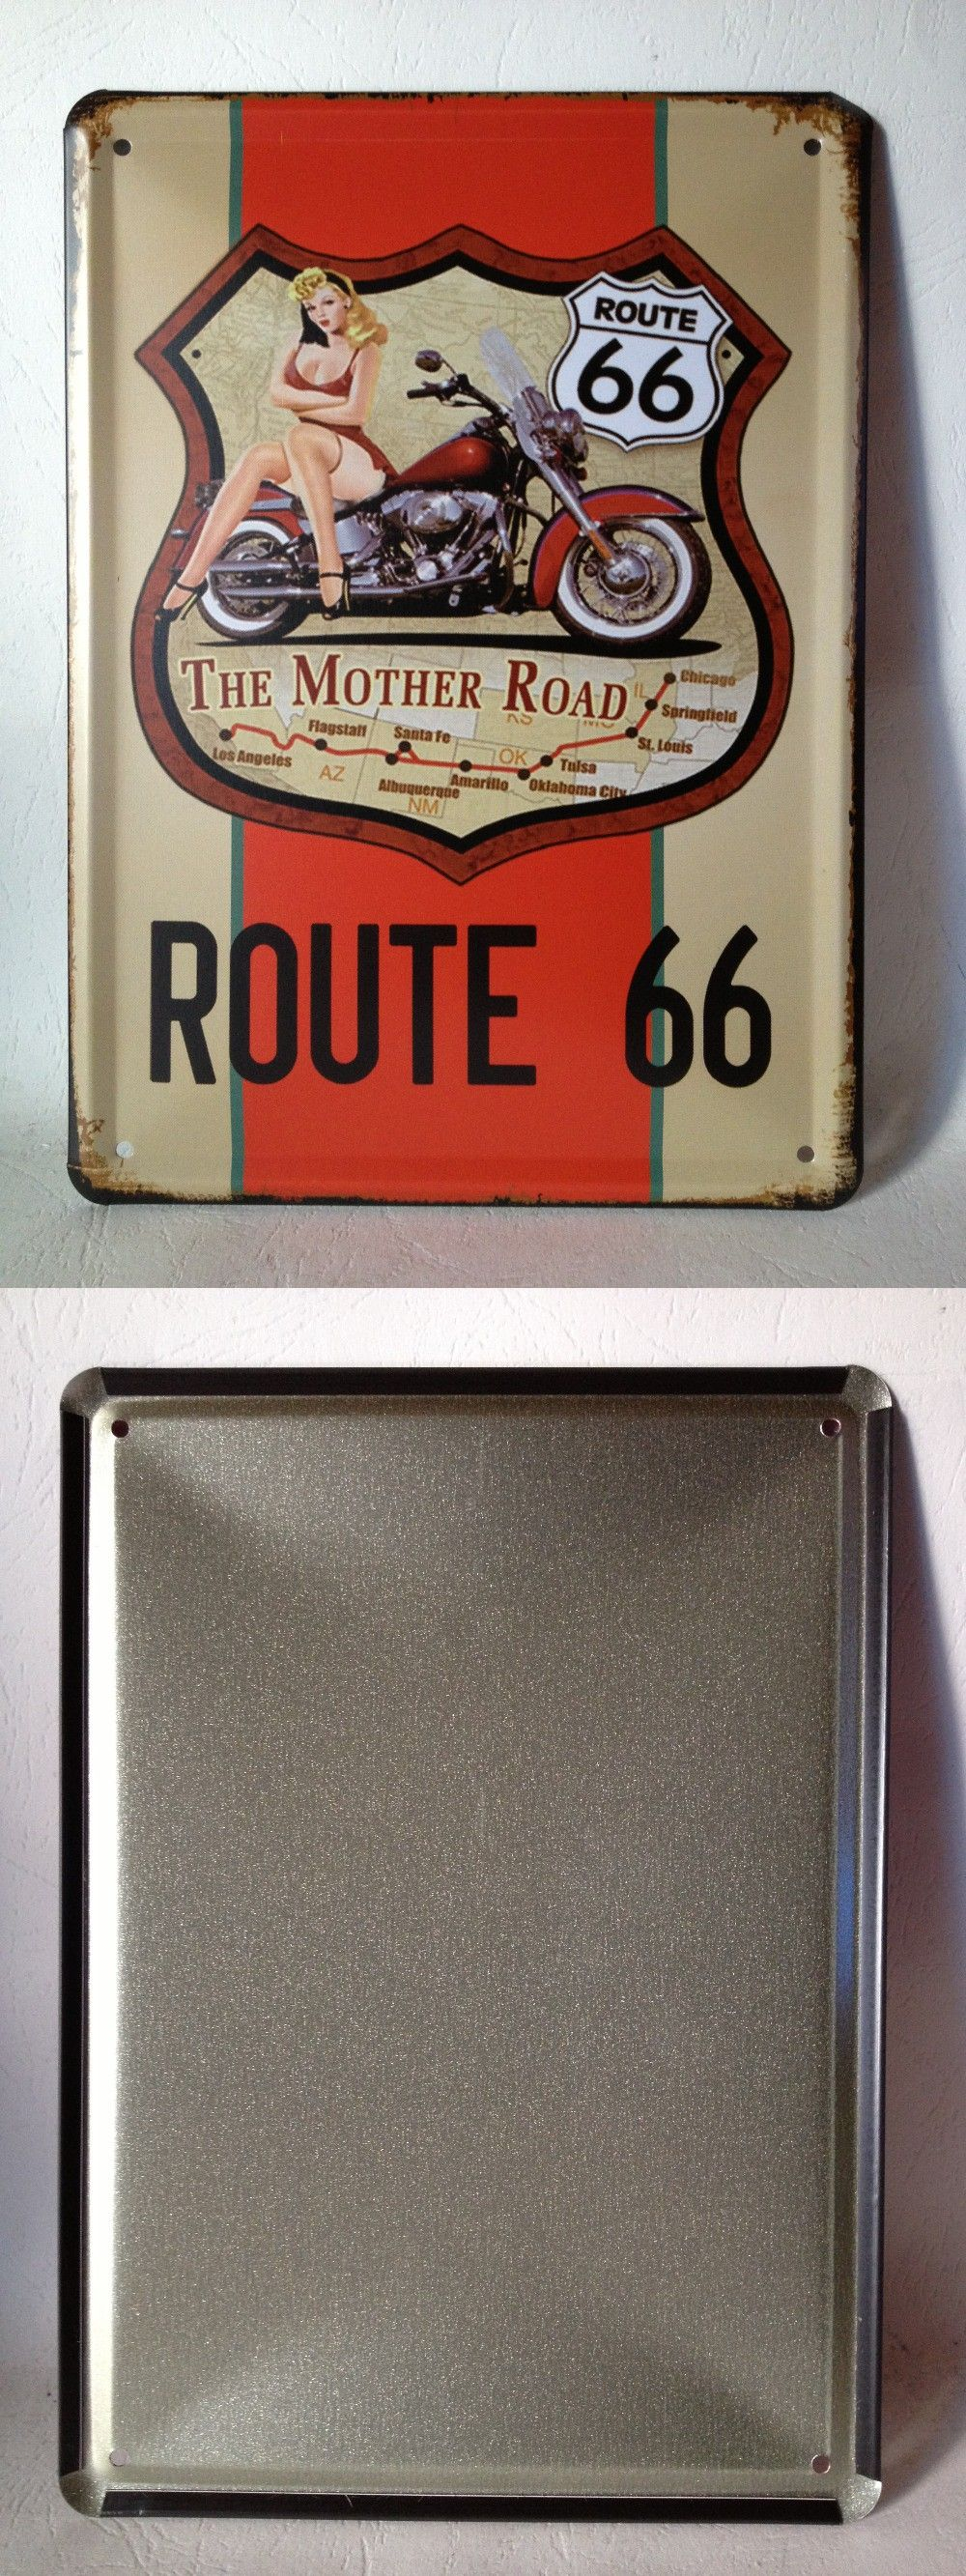 Xcm us route the mother road vintagetin sign bar pub home wall